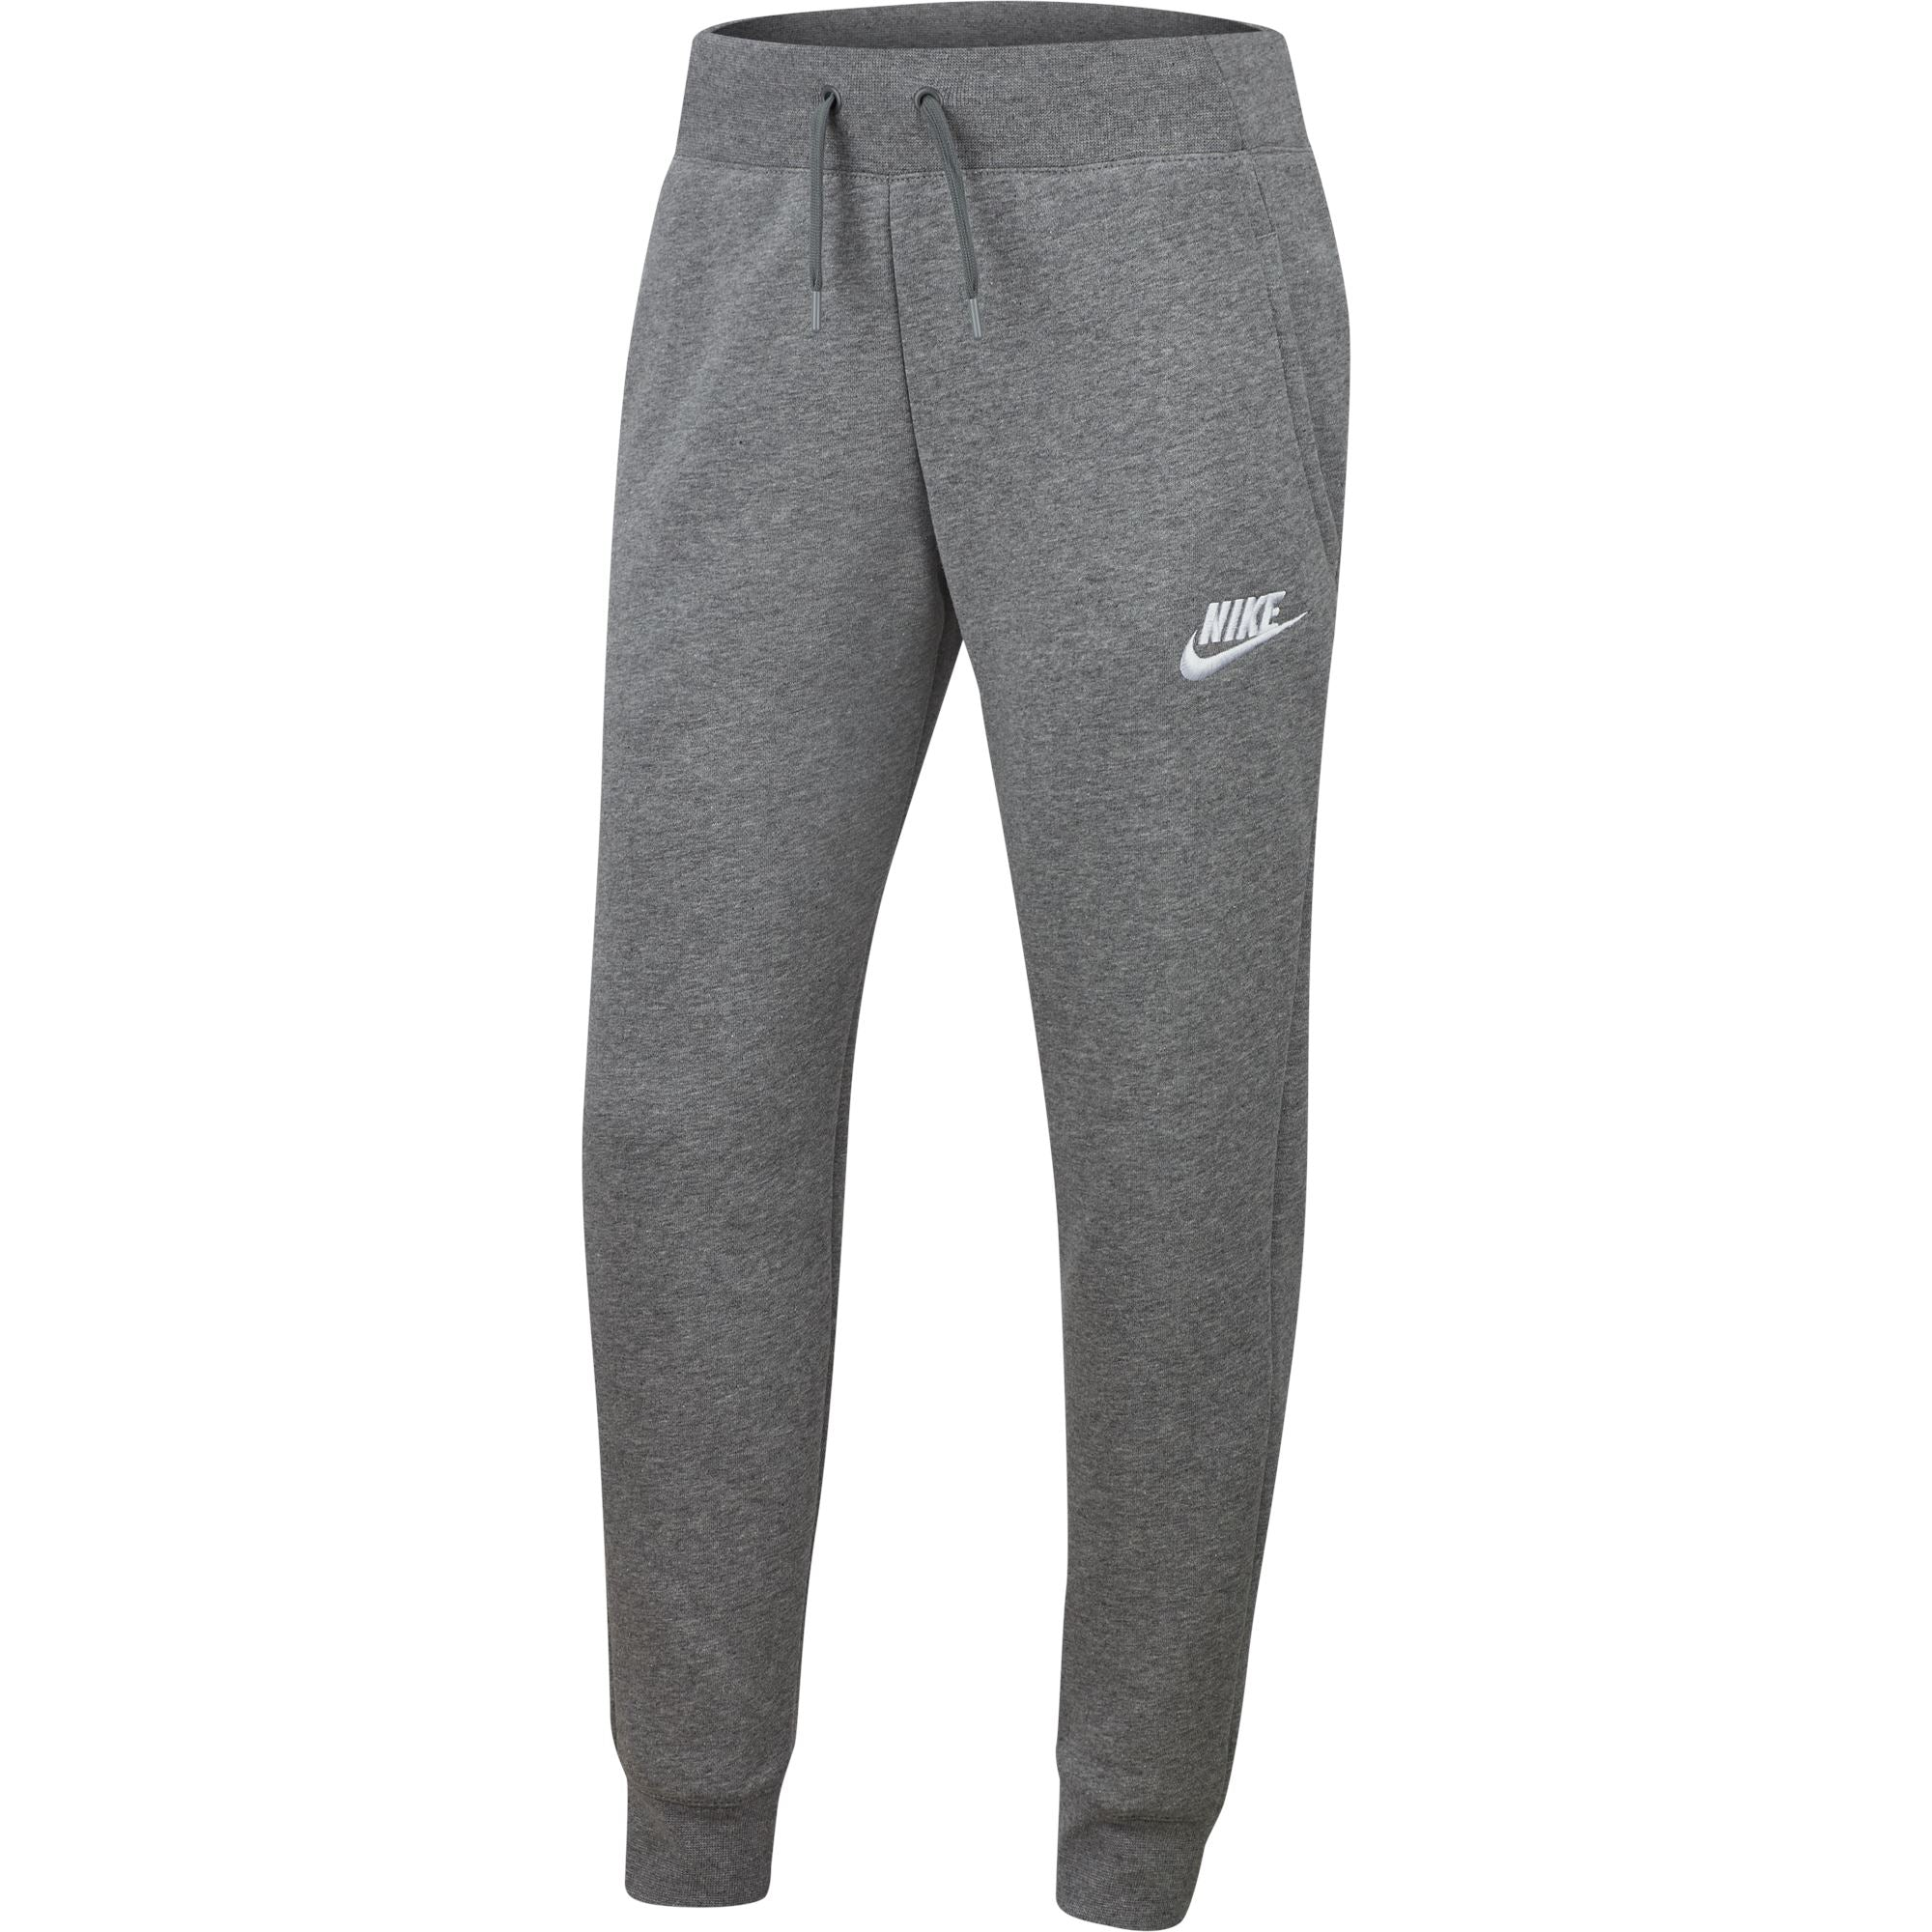 Nike Sportswear Big Kids (Girls) Pants - Carbon Heather/White SP-ApparelPants-Kids Nike